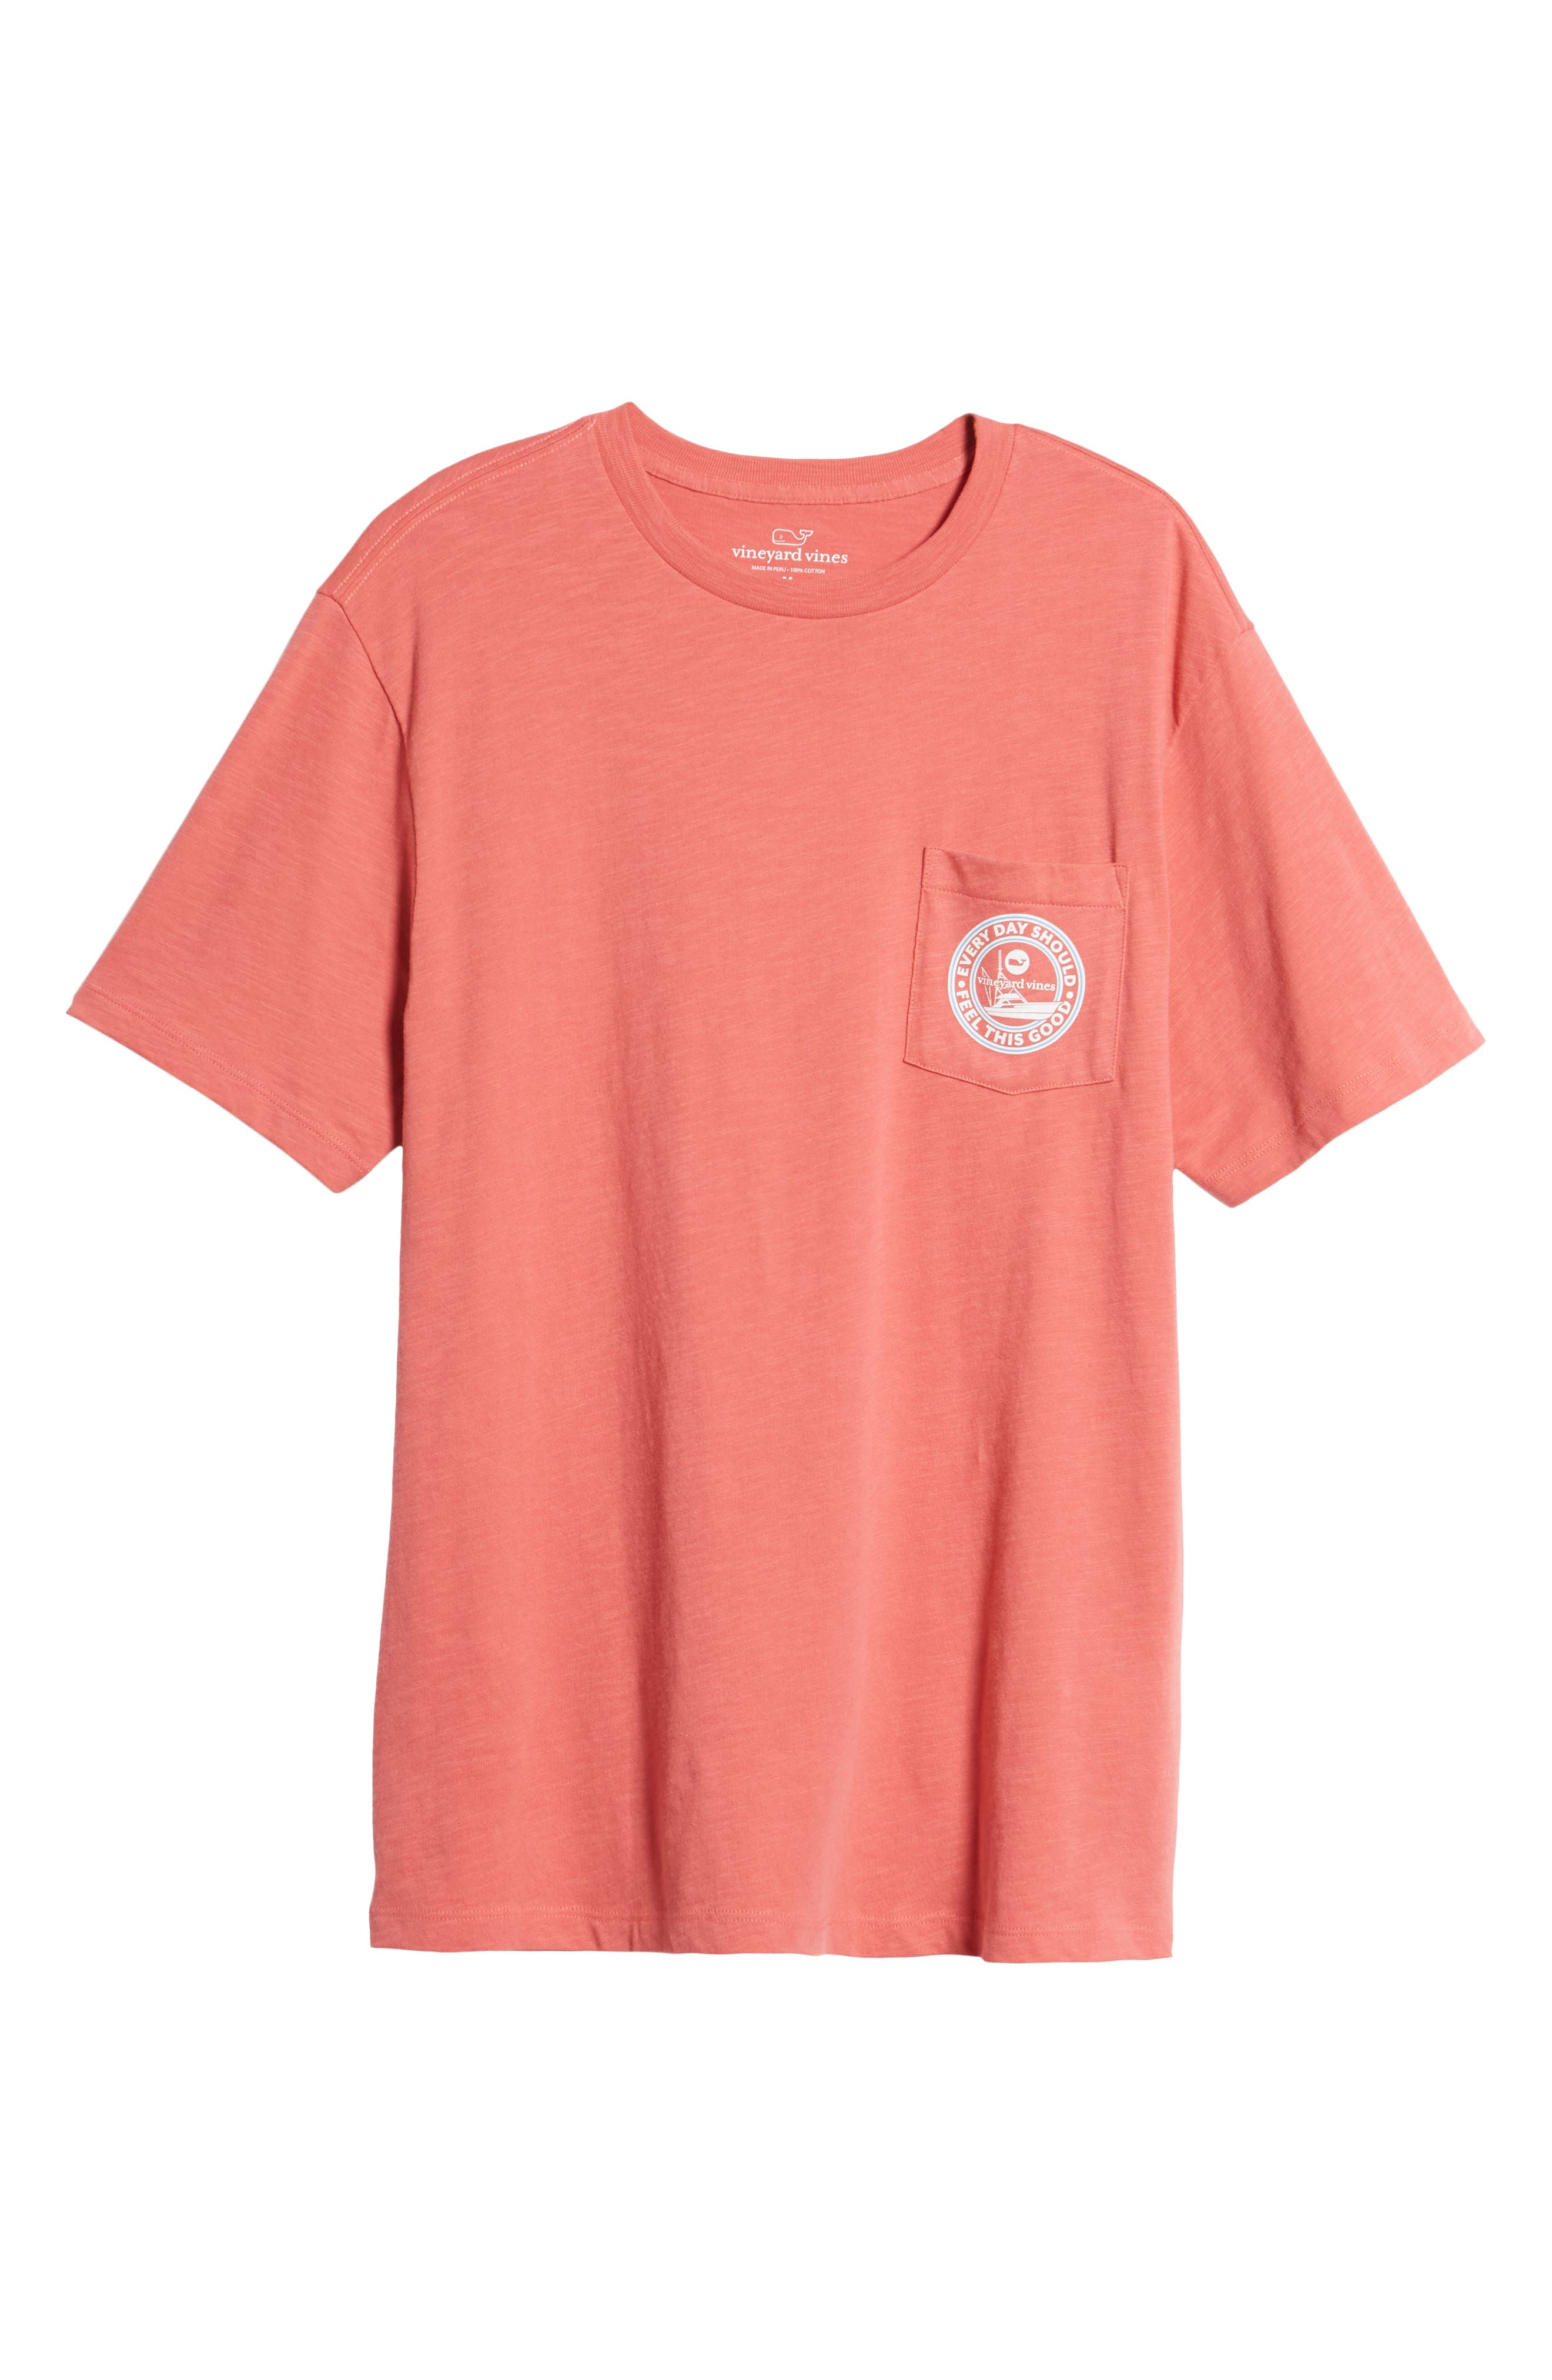 Every Day Should Feel This Good Pocket T-Shirt,                             Alternate thumbnail 6, color,                             628